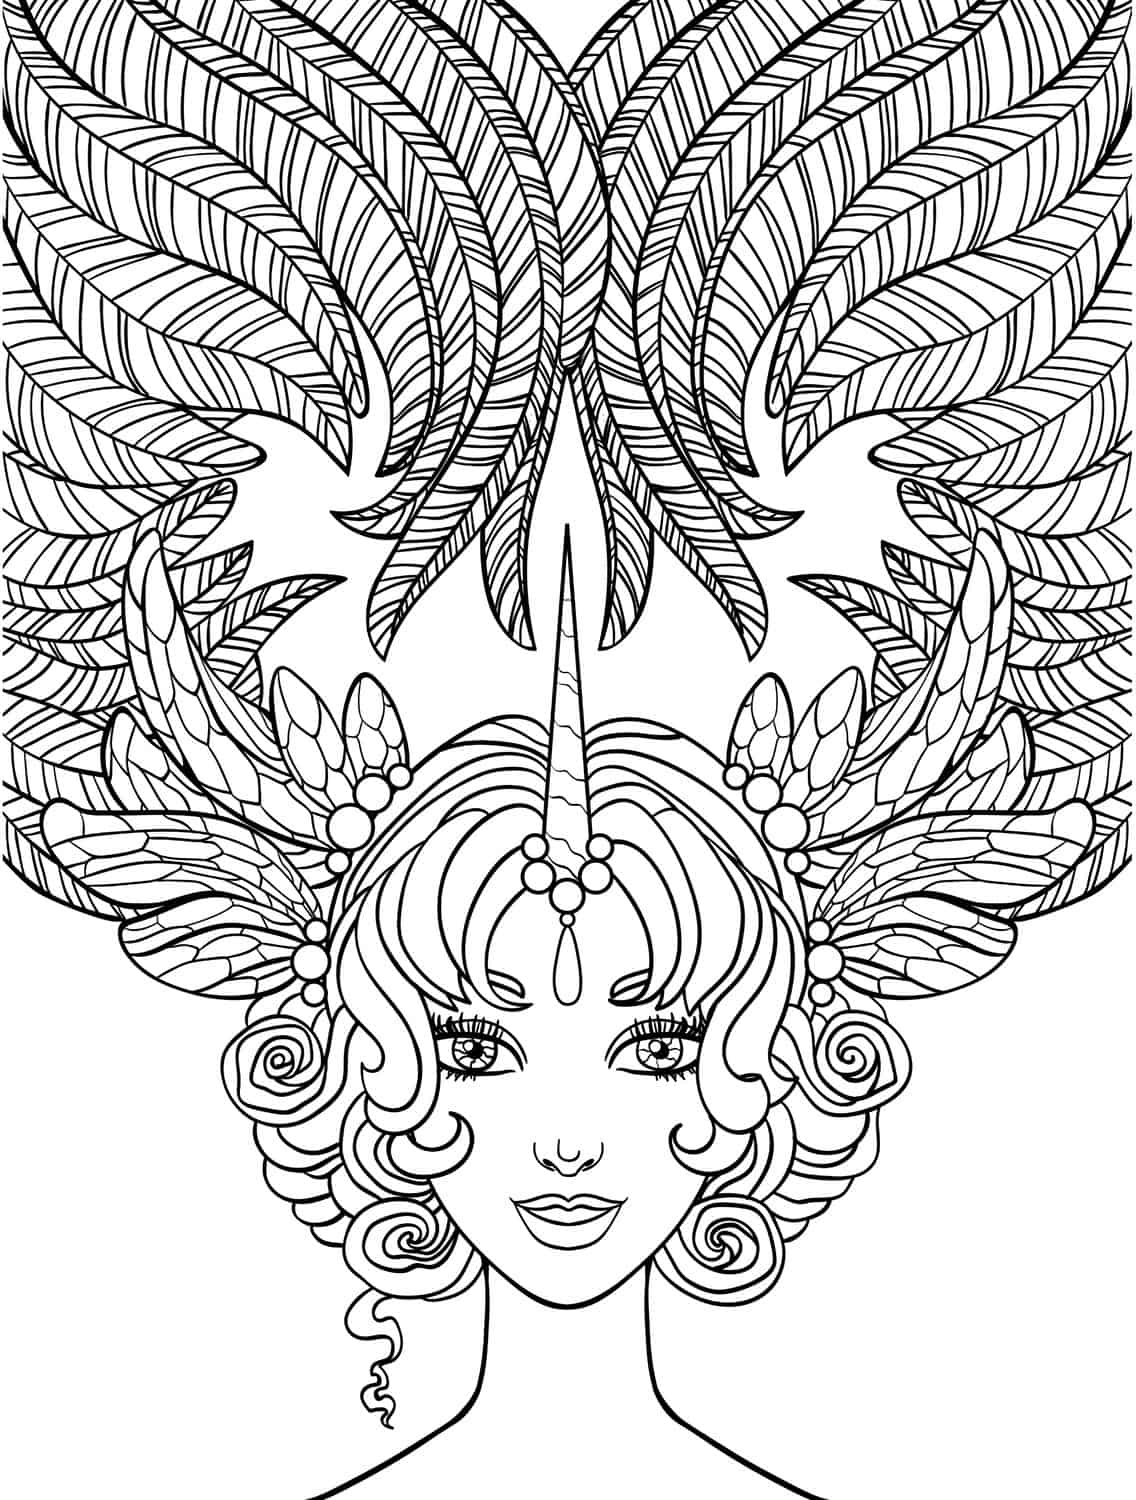 10 Crazy Hair Adult Coloring Pages Page 11 Of 12 Nerdy Mamma